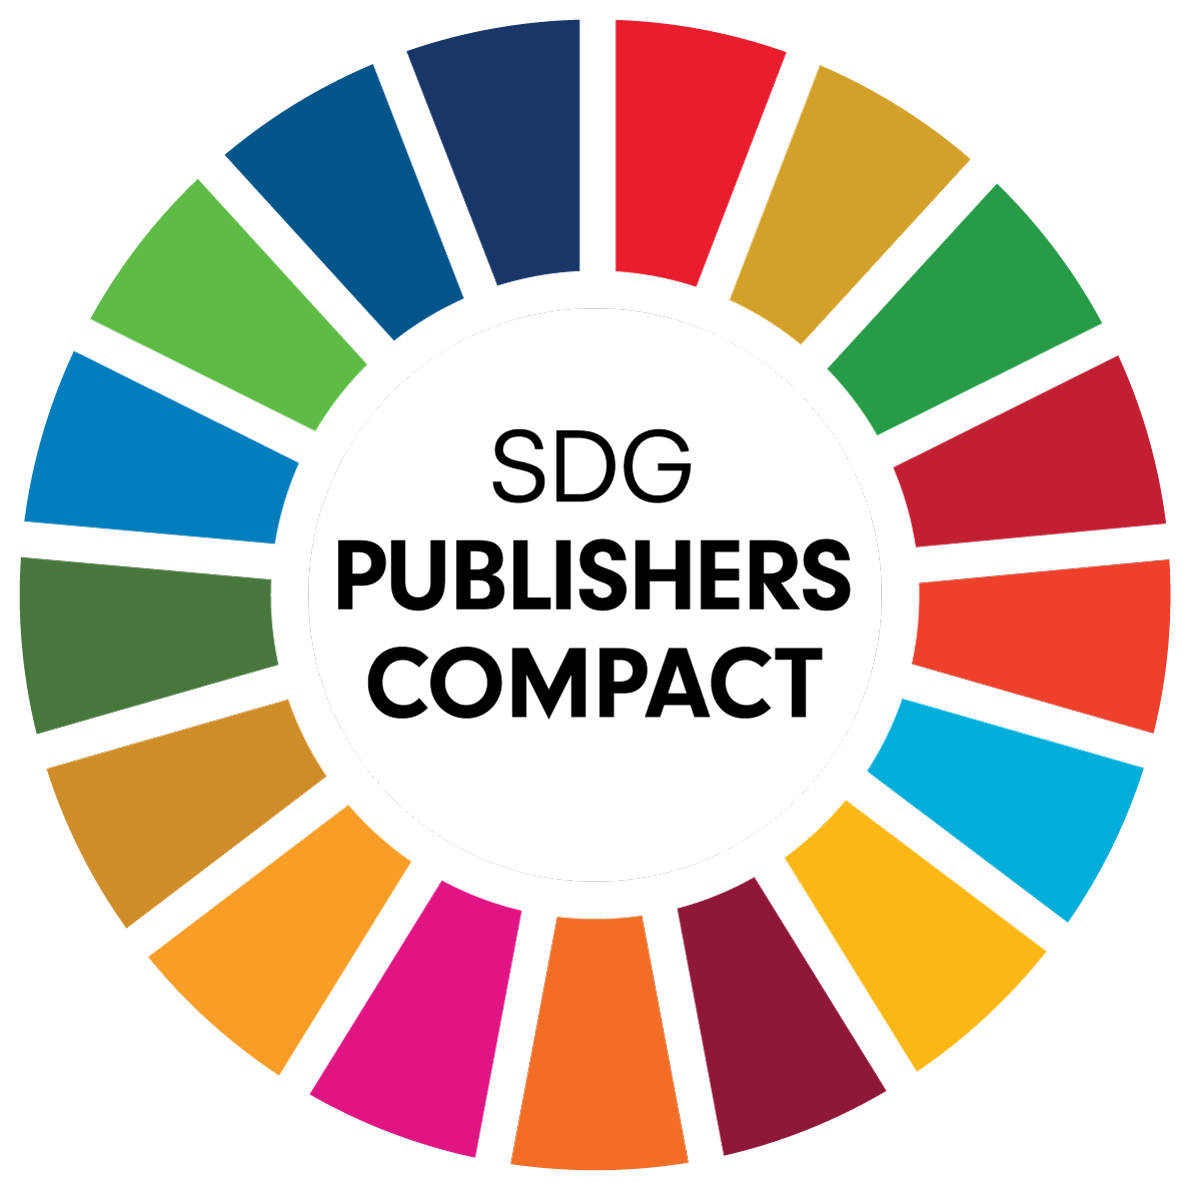 United Nations Sustainable Development goals publishers compact logo - a circle of segments of colour arranged like a clock face